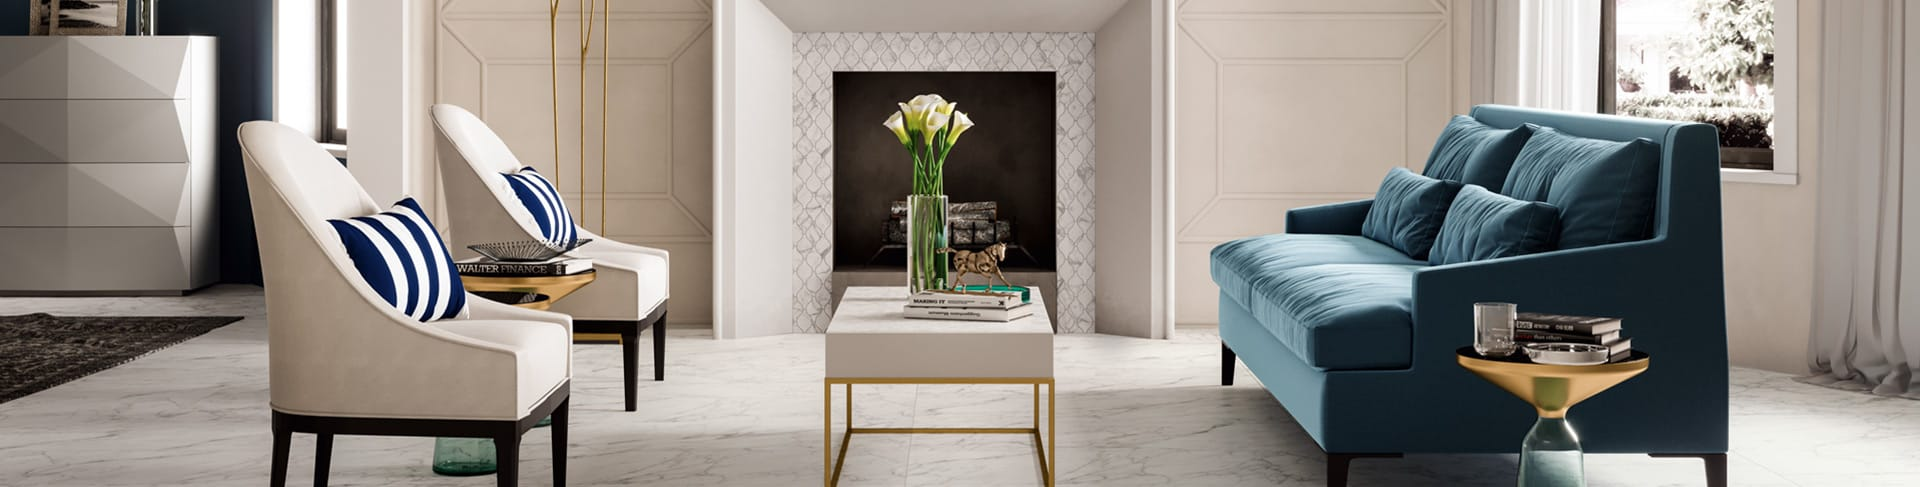 Beautiful porcelain tile living room with a marble look from the Atlas Concorde USA Trilogy Collection